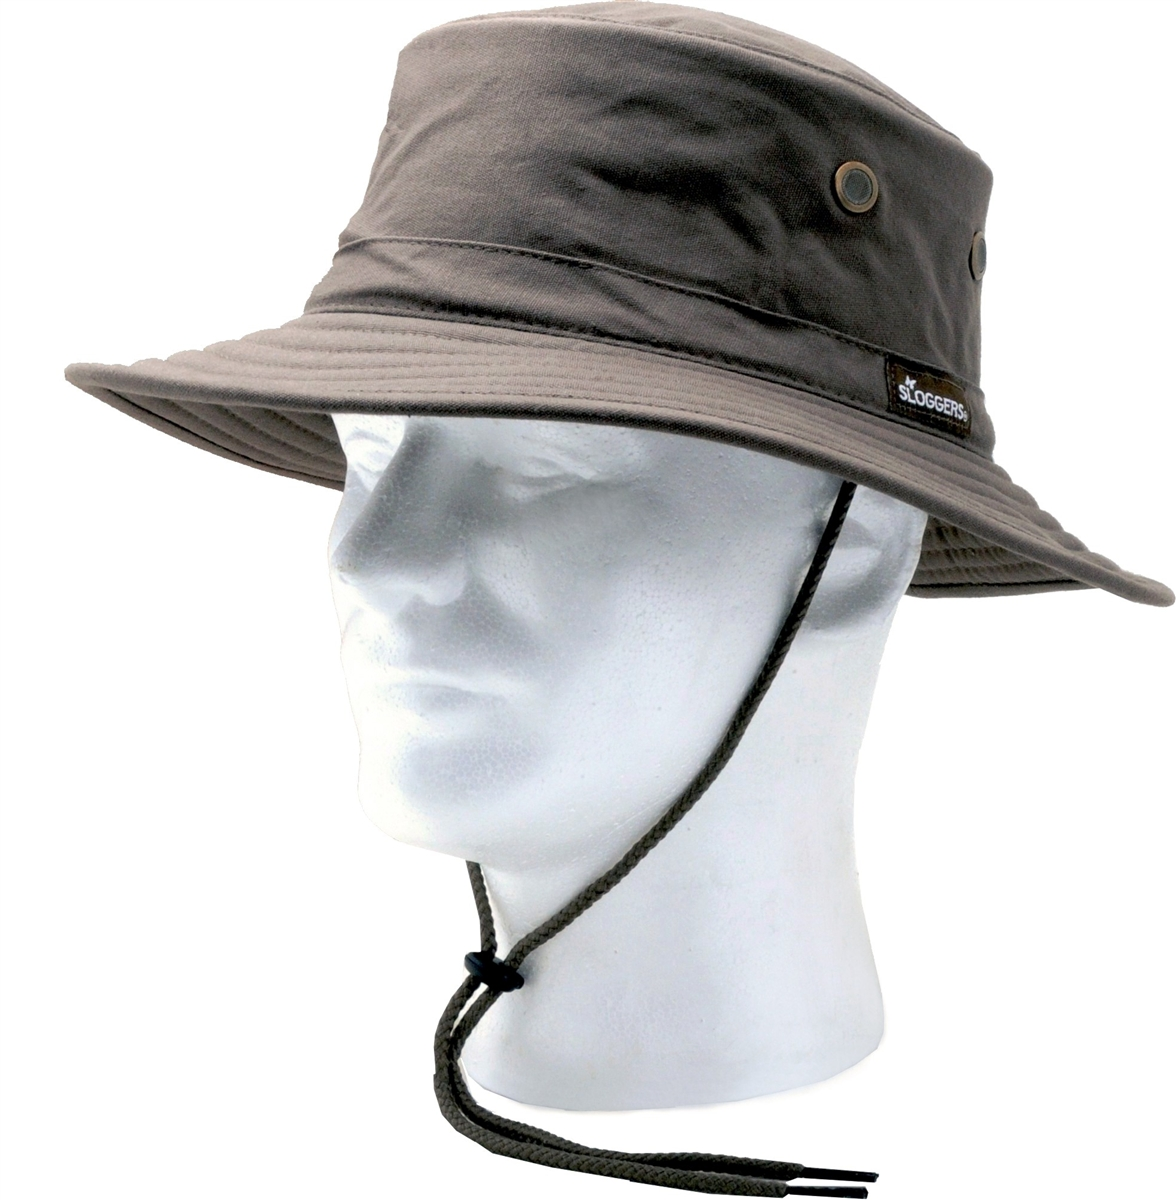 13a8f40bbe4e52 Sloggers Cotton Sun Hat with Wind Lanyard UPF 50+ Maximum Sun Protection